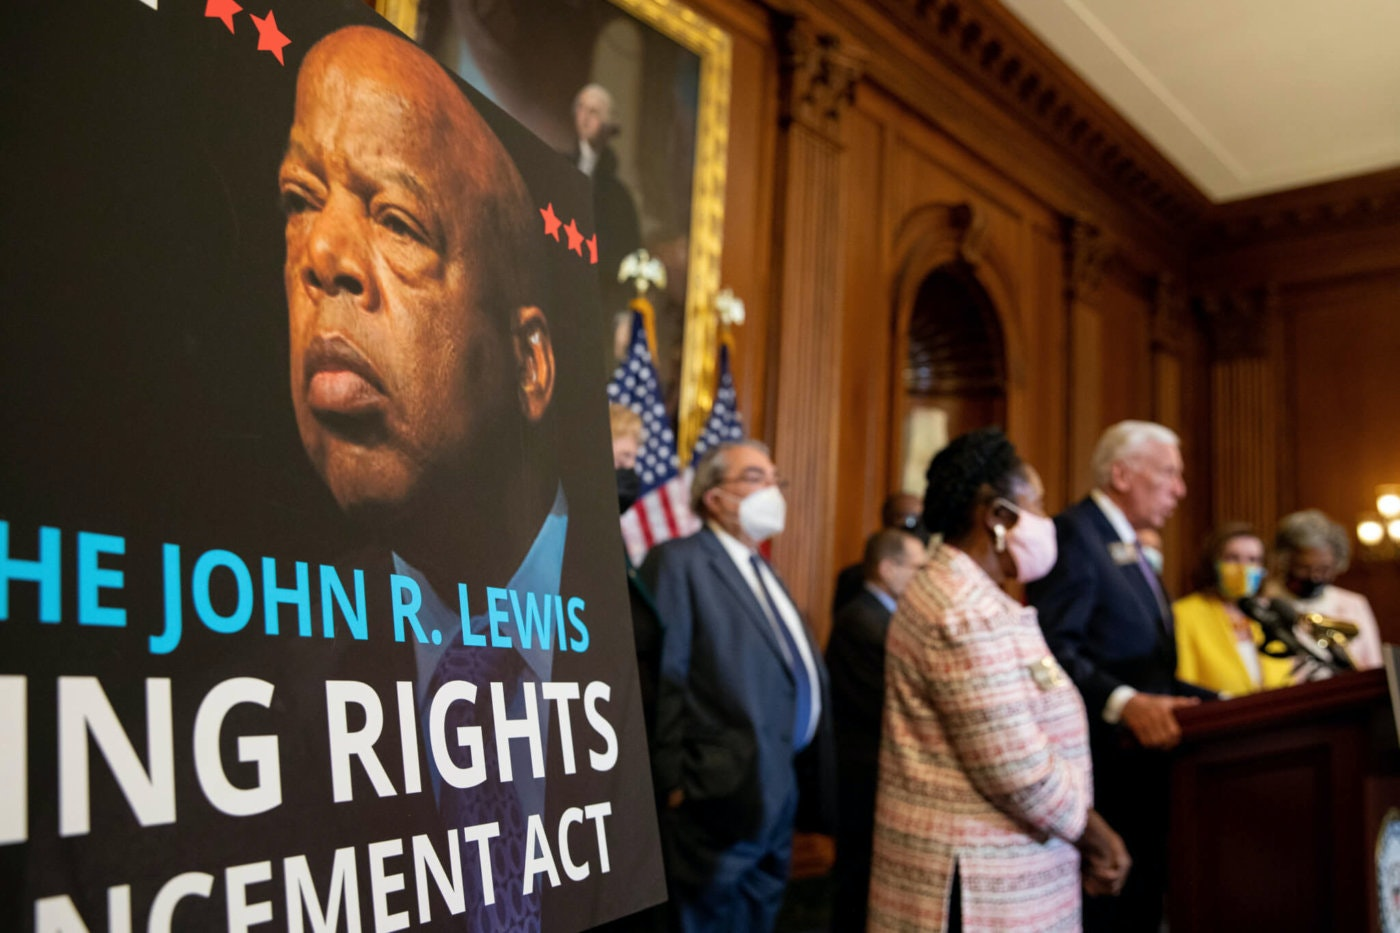 A poster bearing the image of voting rights icon John Lewis is seen during a news conference after the House of Representatives passed the The John Lewis Voting Rights Advancement Act in Washington, on Capitol Hill in Washington, on Tuesday, Aug. 24, 2021. (AP Photo/Amanda Andrade-Rhoades)